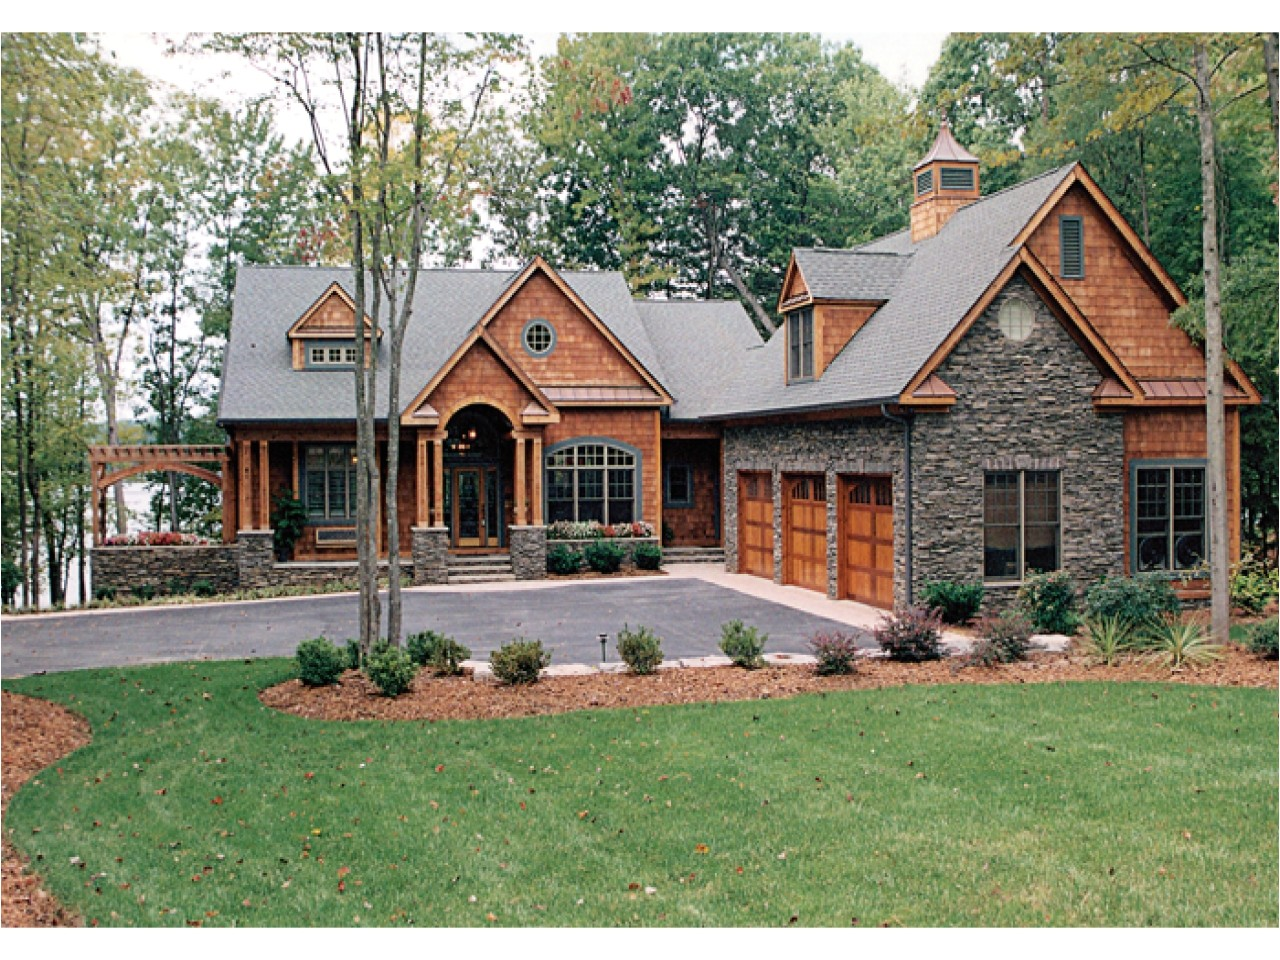 House Plans for Lake Houses Craftsman House Plans Lake Homes View Plans Lake House